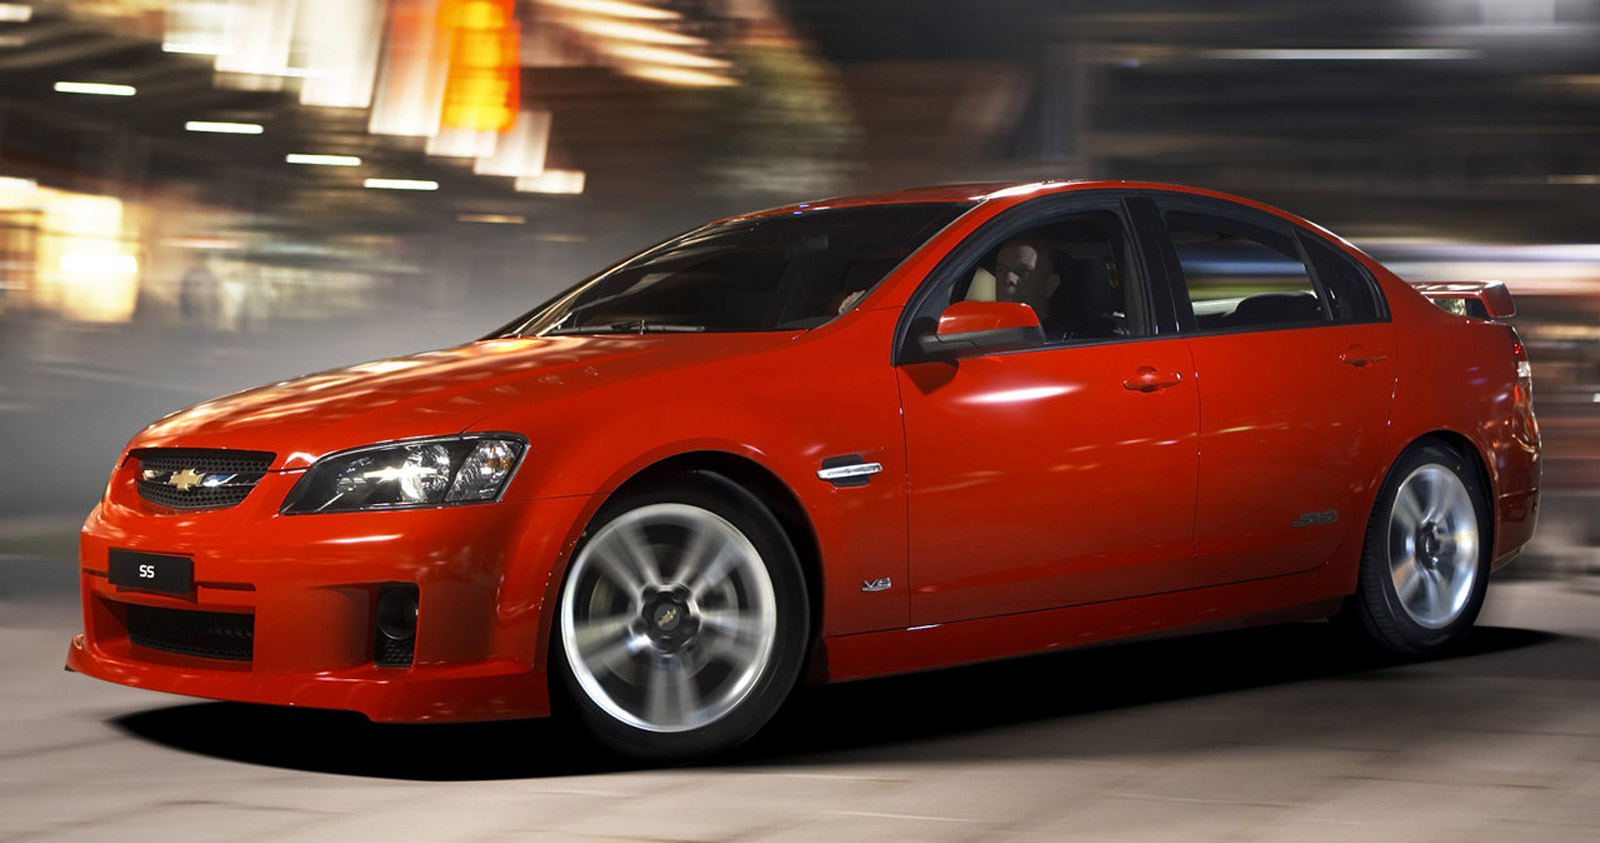 2014 Chevrolet Ss Performance Announcement Due Soon Report